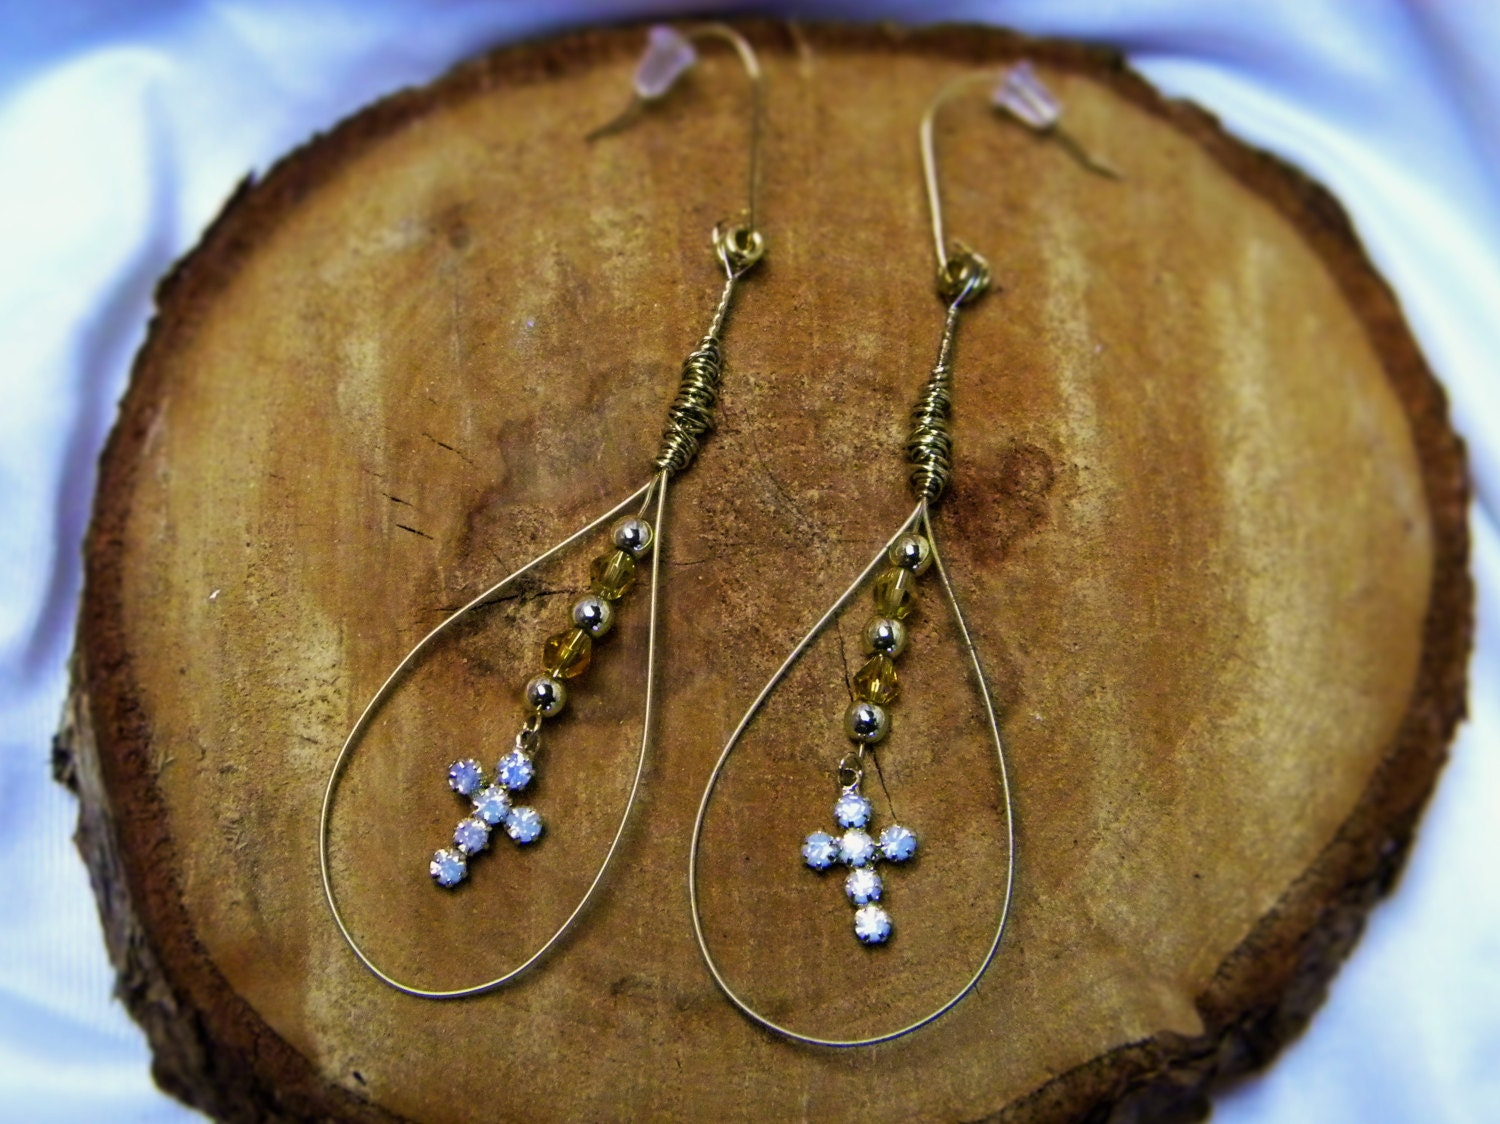 guitar string earrings with crystal cross dangles. Black Bedroom Furniture Sets. Home Design Ideas